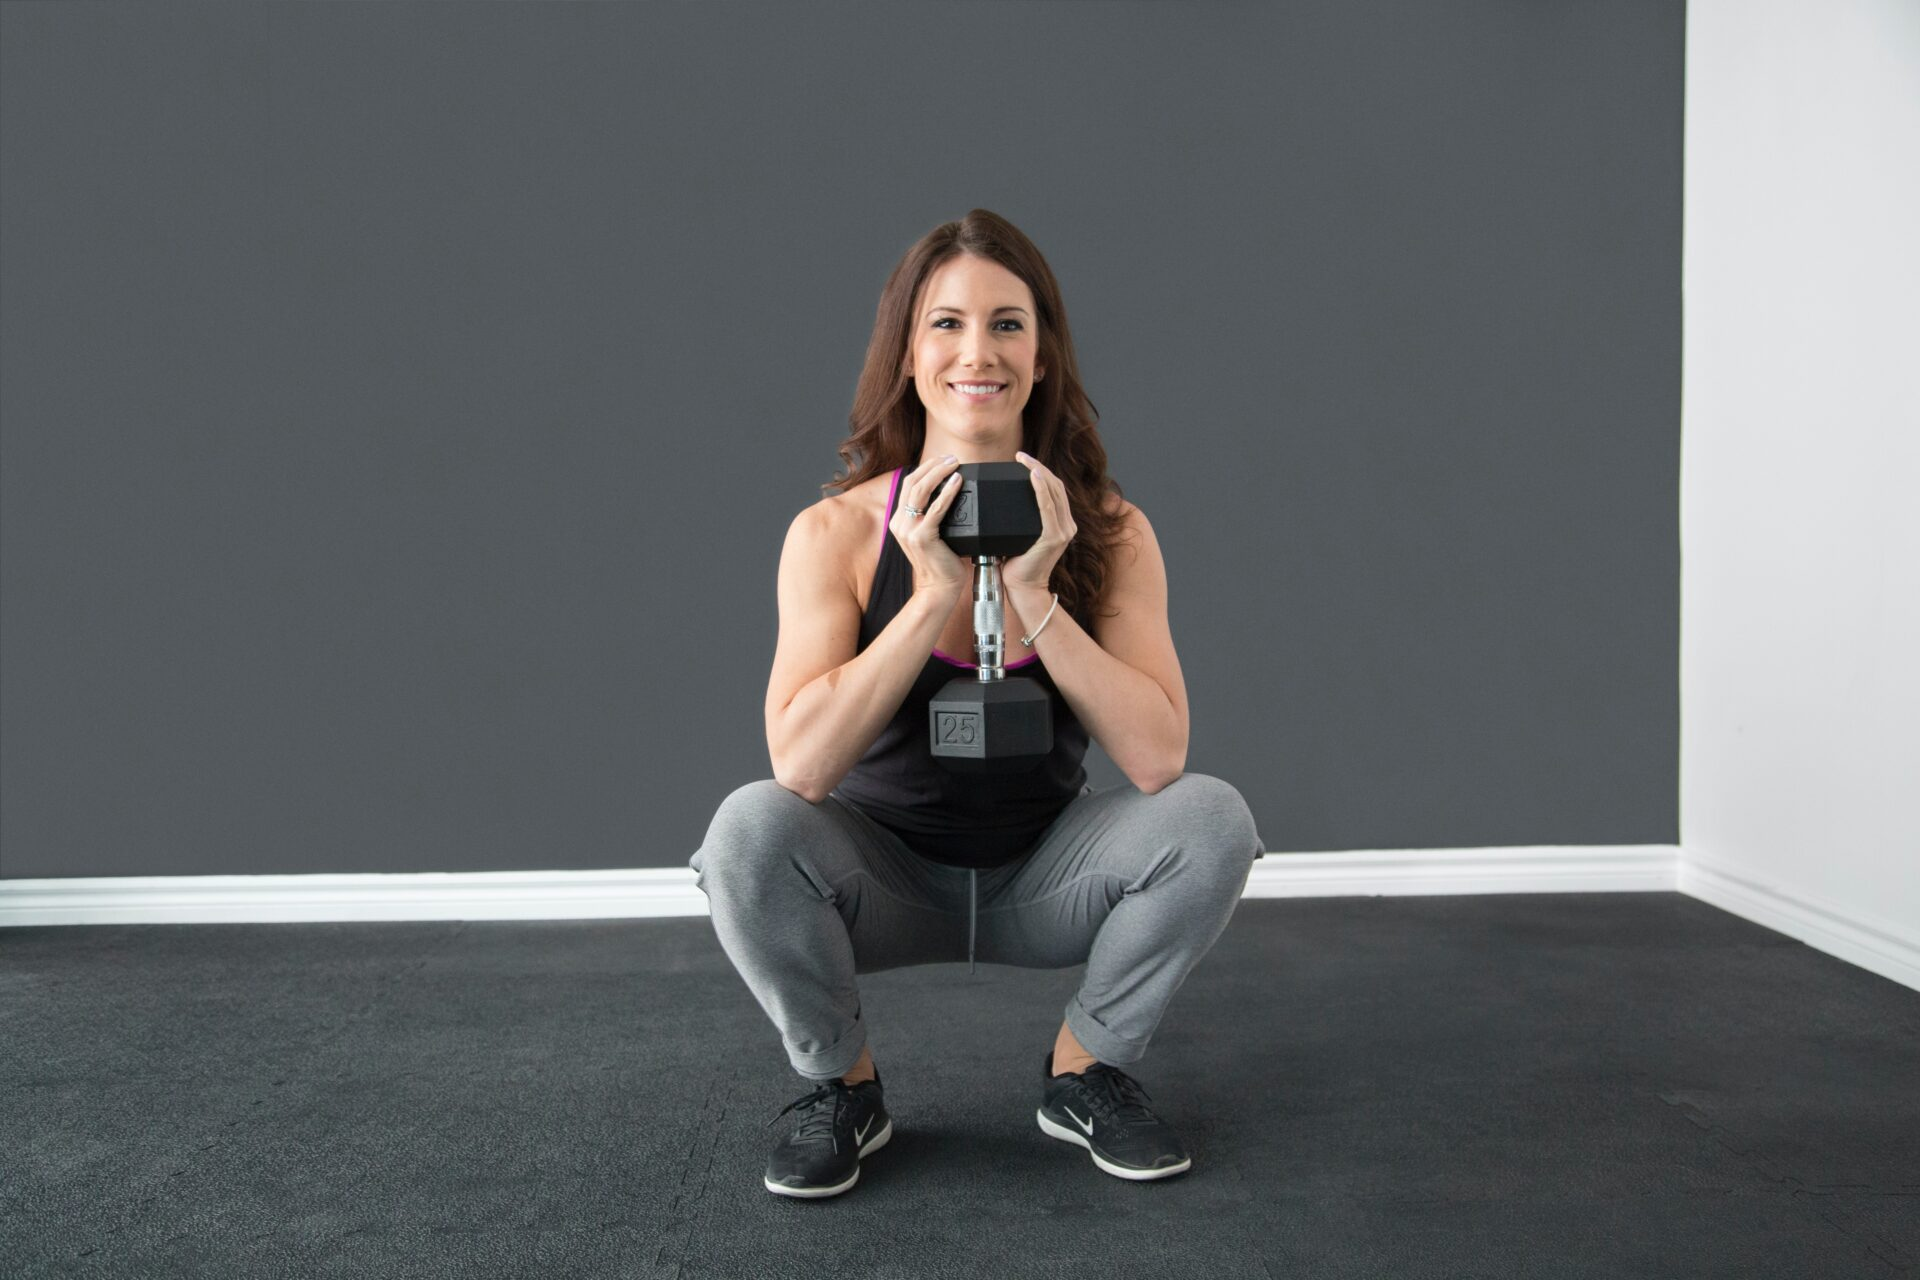 lady doing a deep squat with a weight